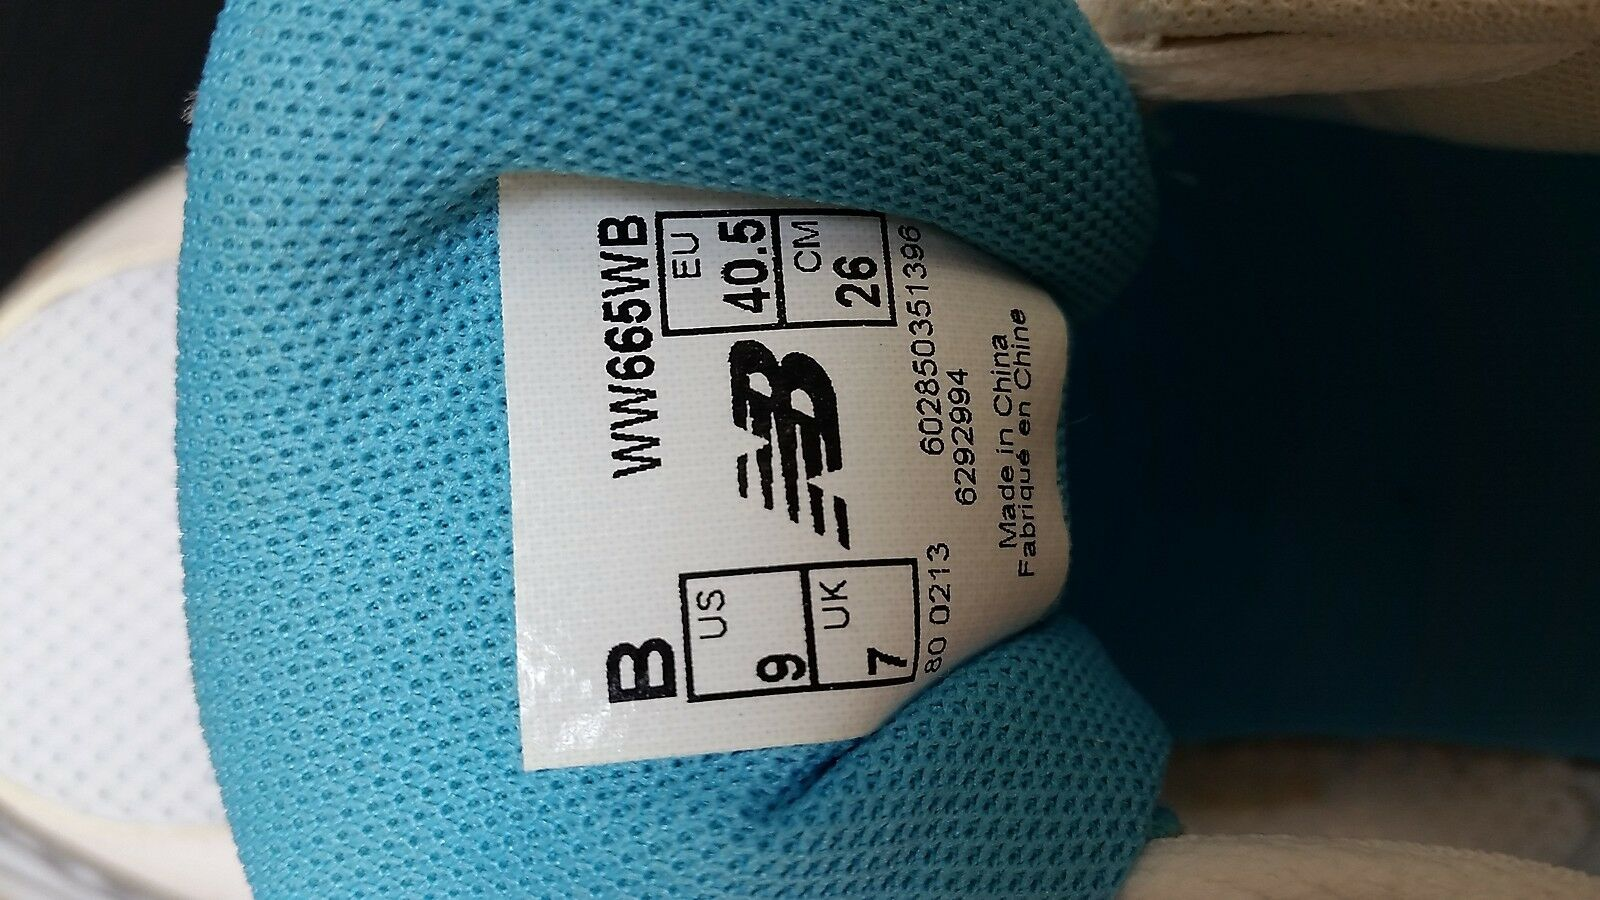 New Balance Schuhes Athletic Weiß Sneakers Walking Damenschuhe Größe Größe Damenschuhe 9 EU 40.5 25dac7